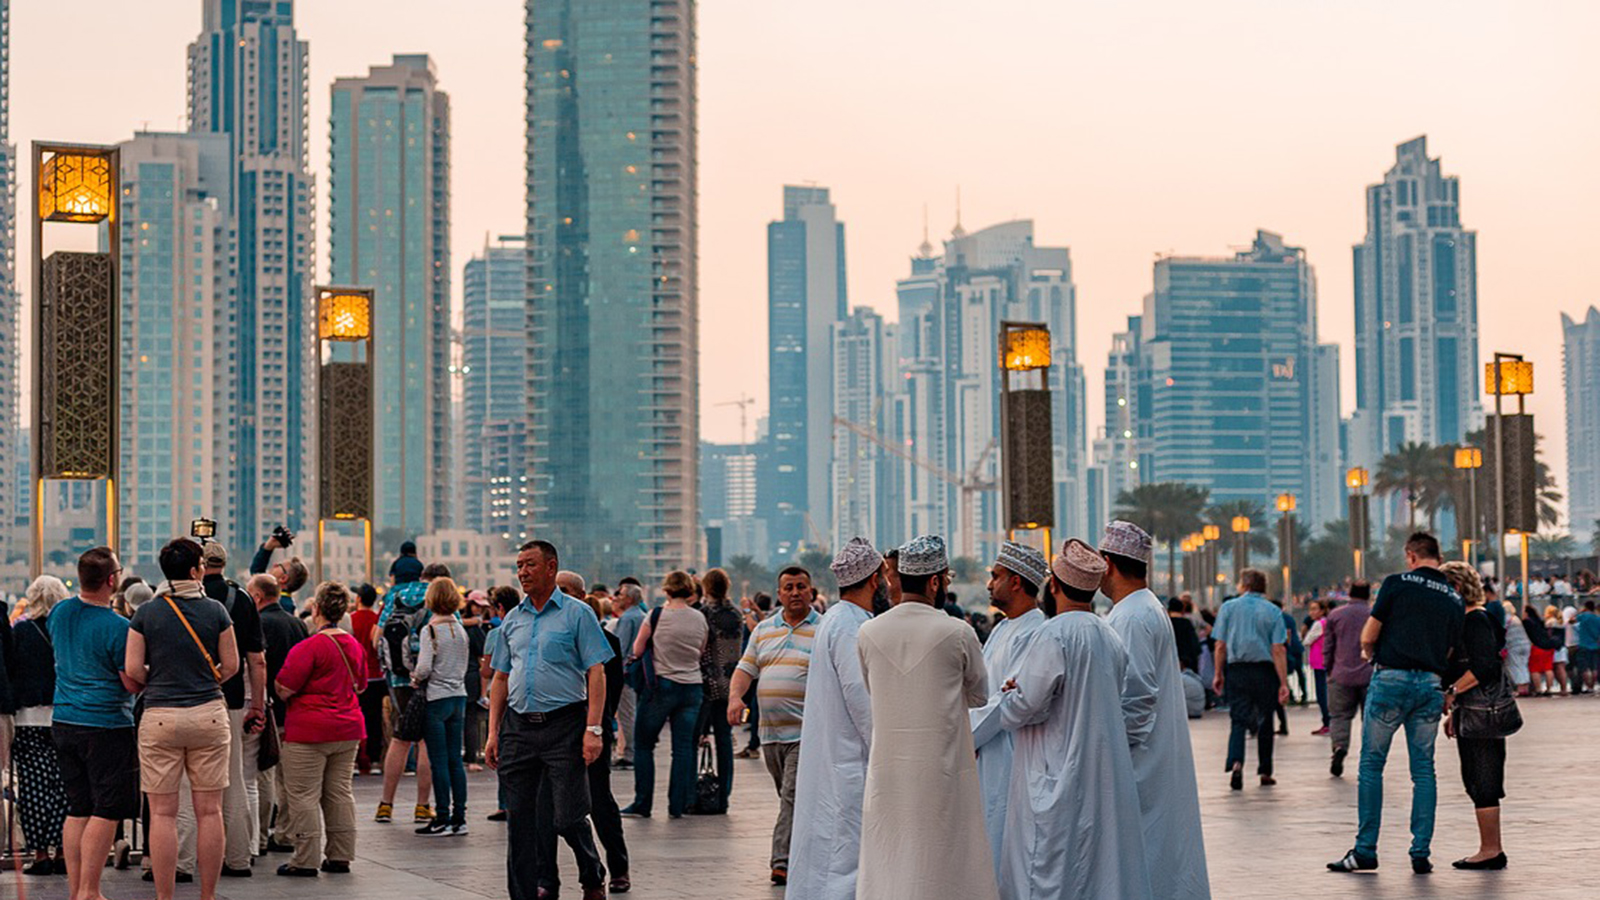 Religious and Secular crowd mingles in downtown Dubai, UAE.